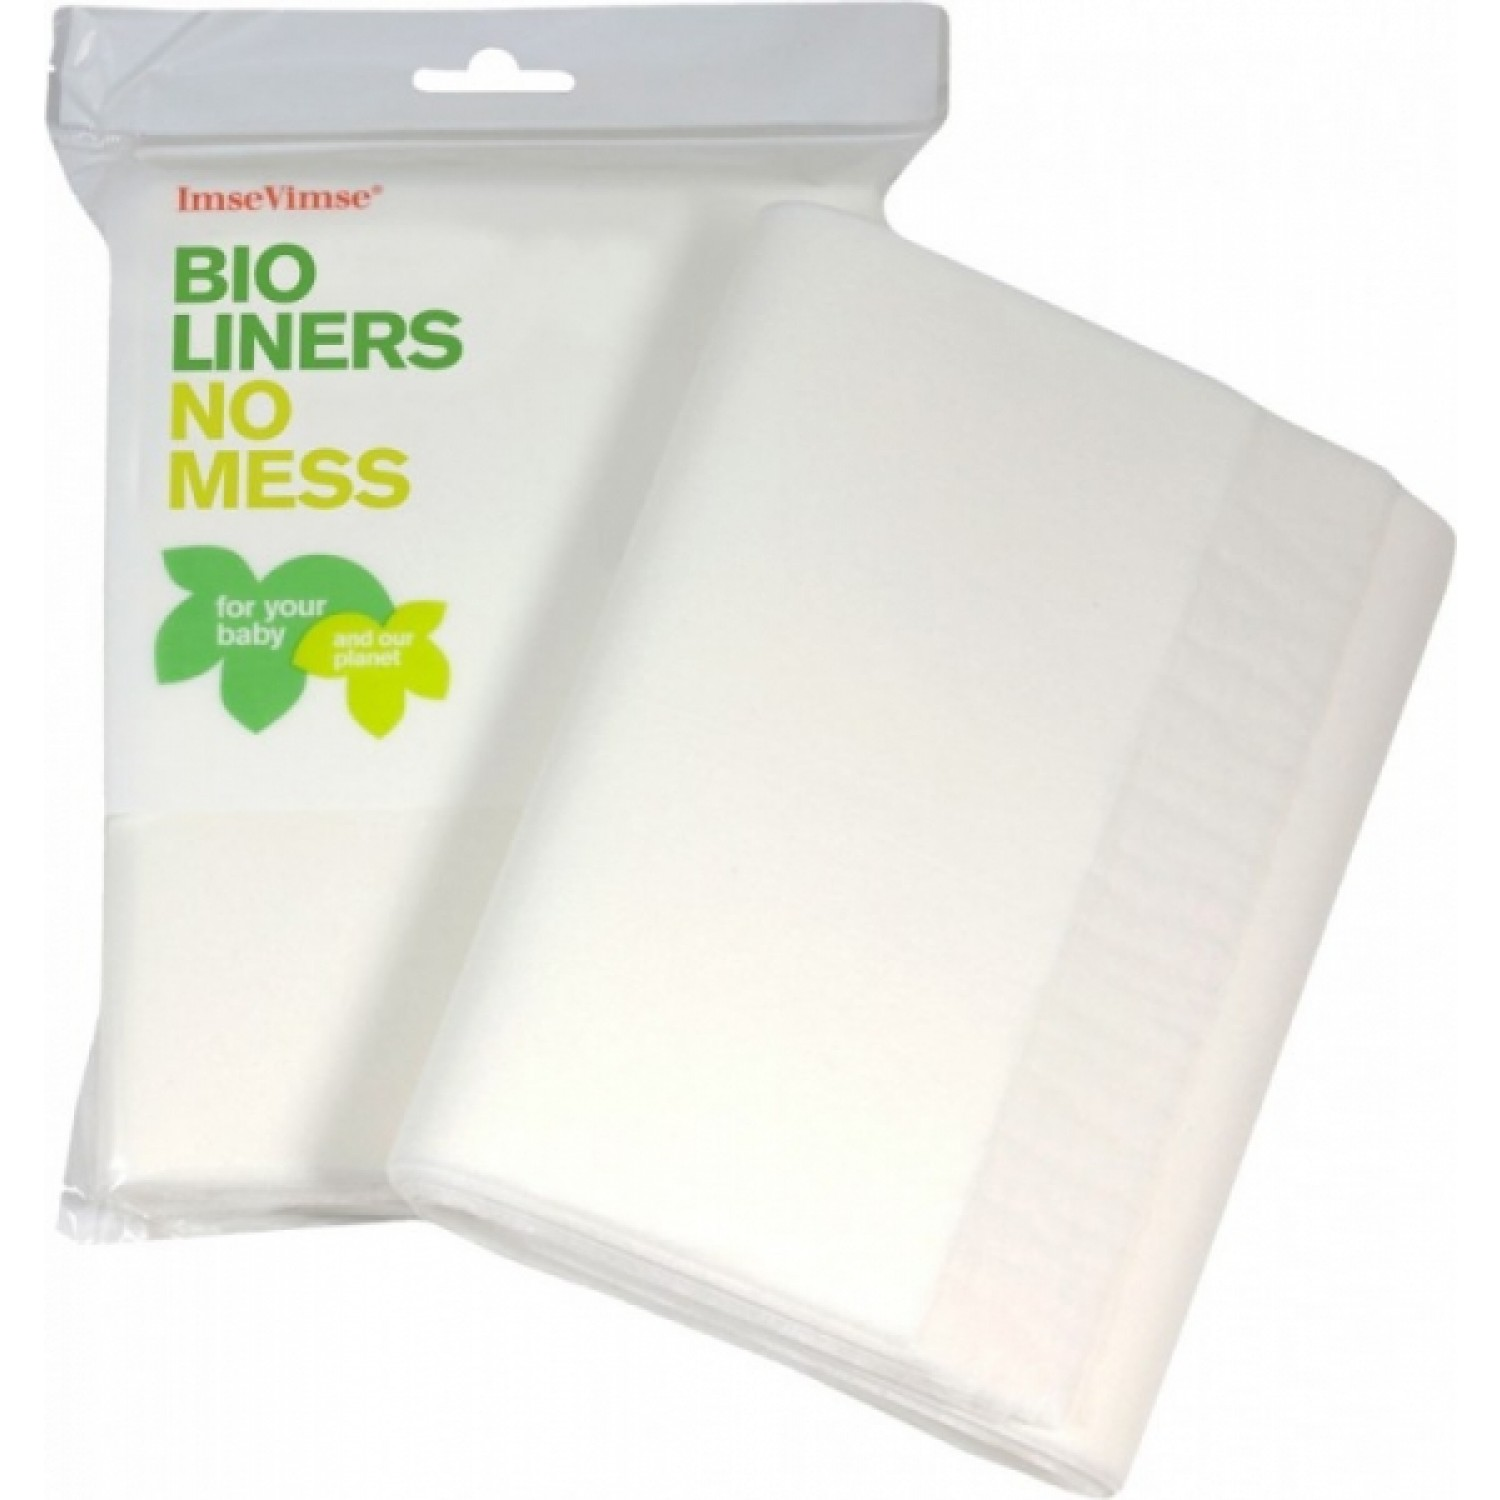 ImseVimse Paper Liners Toddler 100 sheet/pack